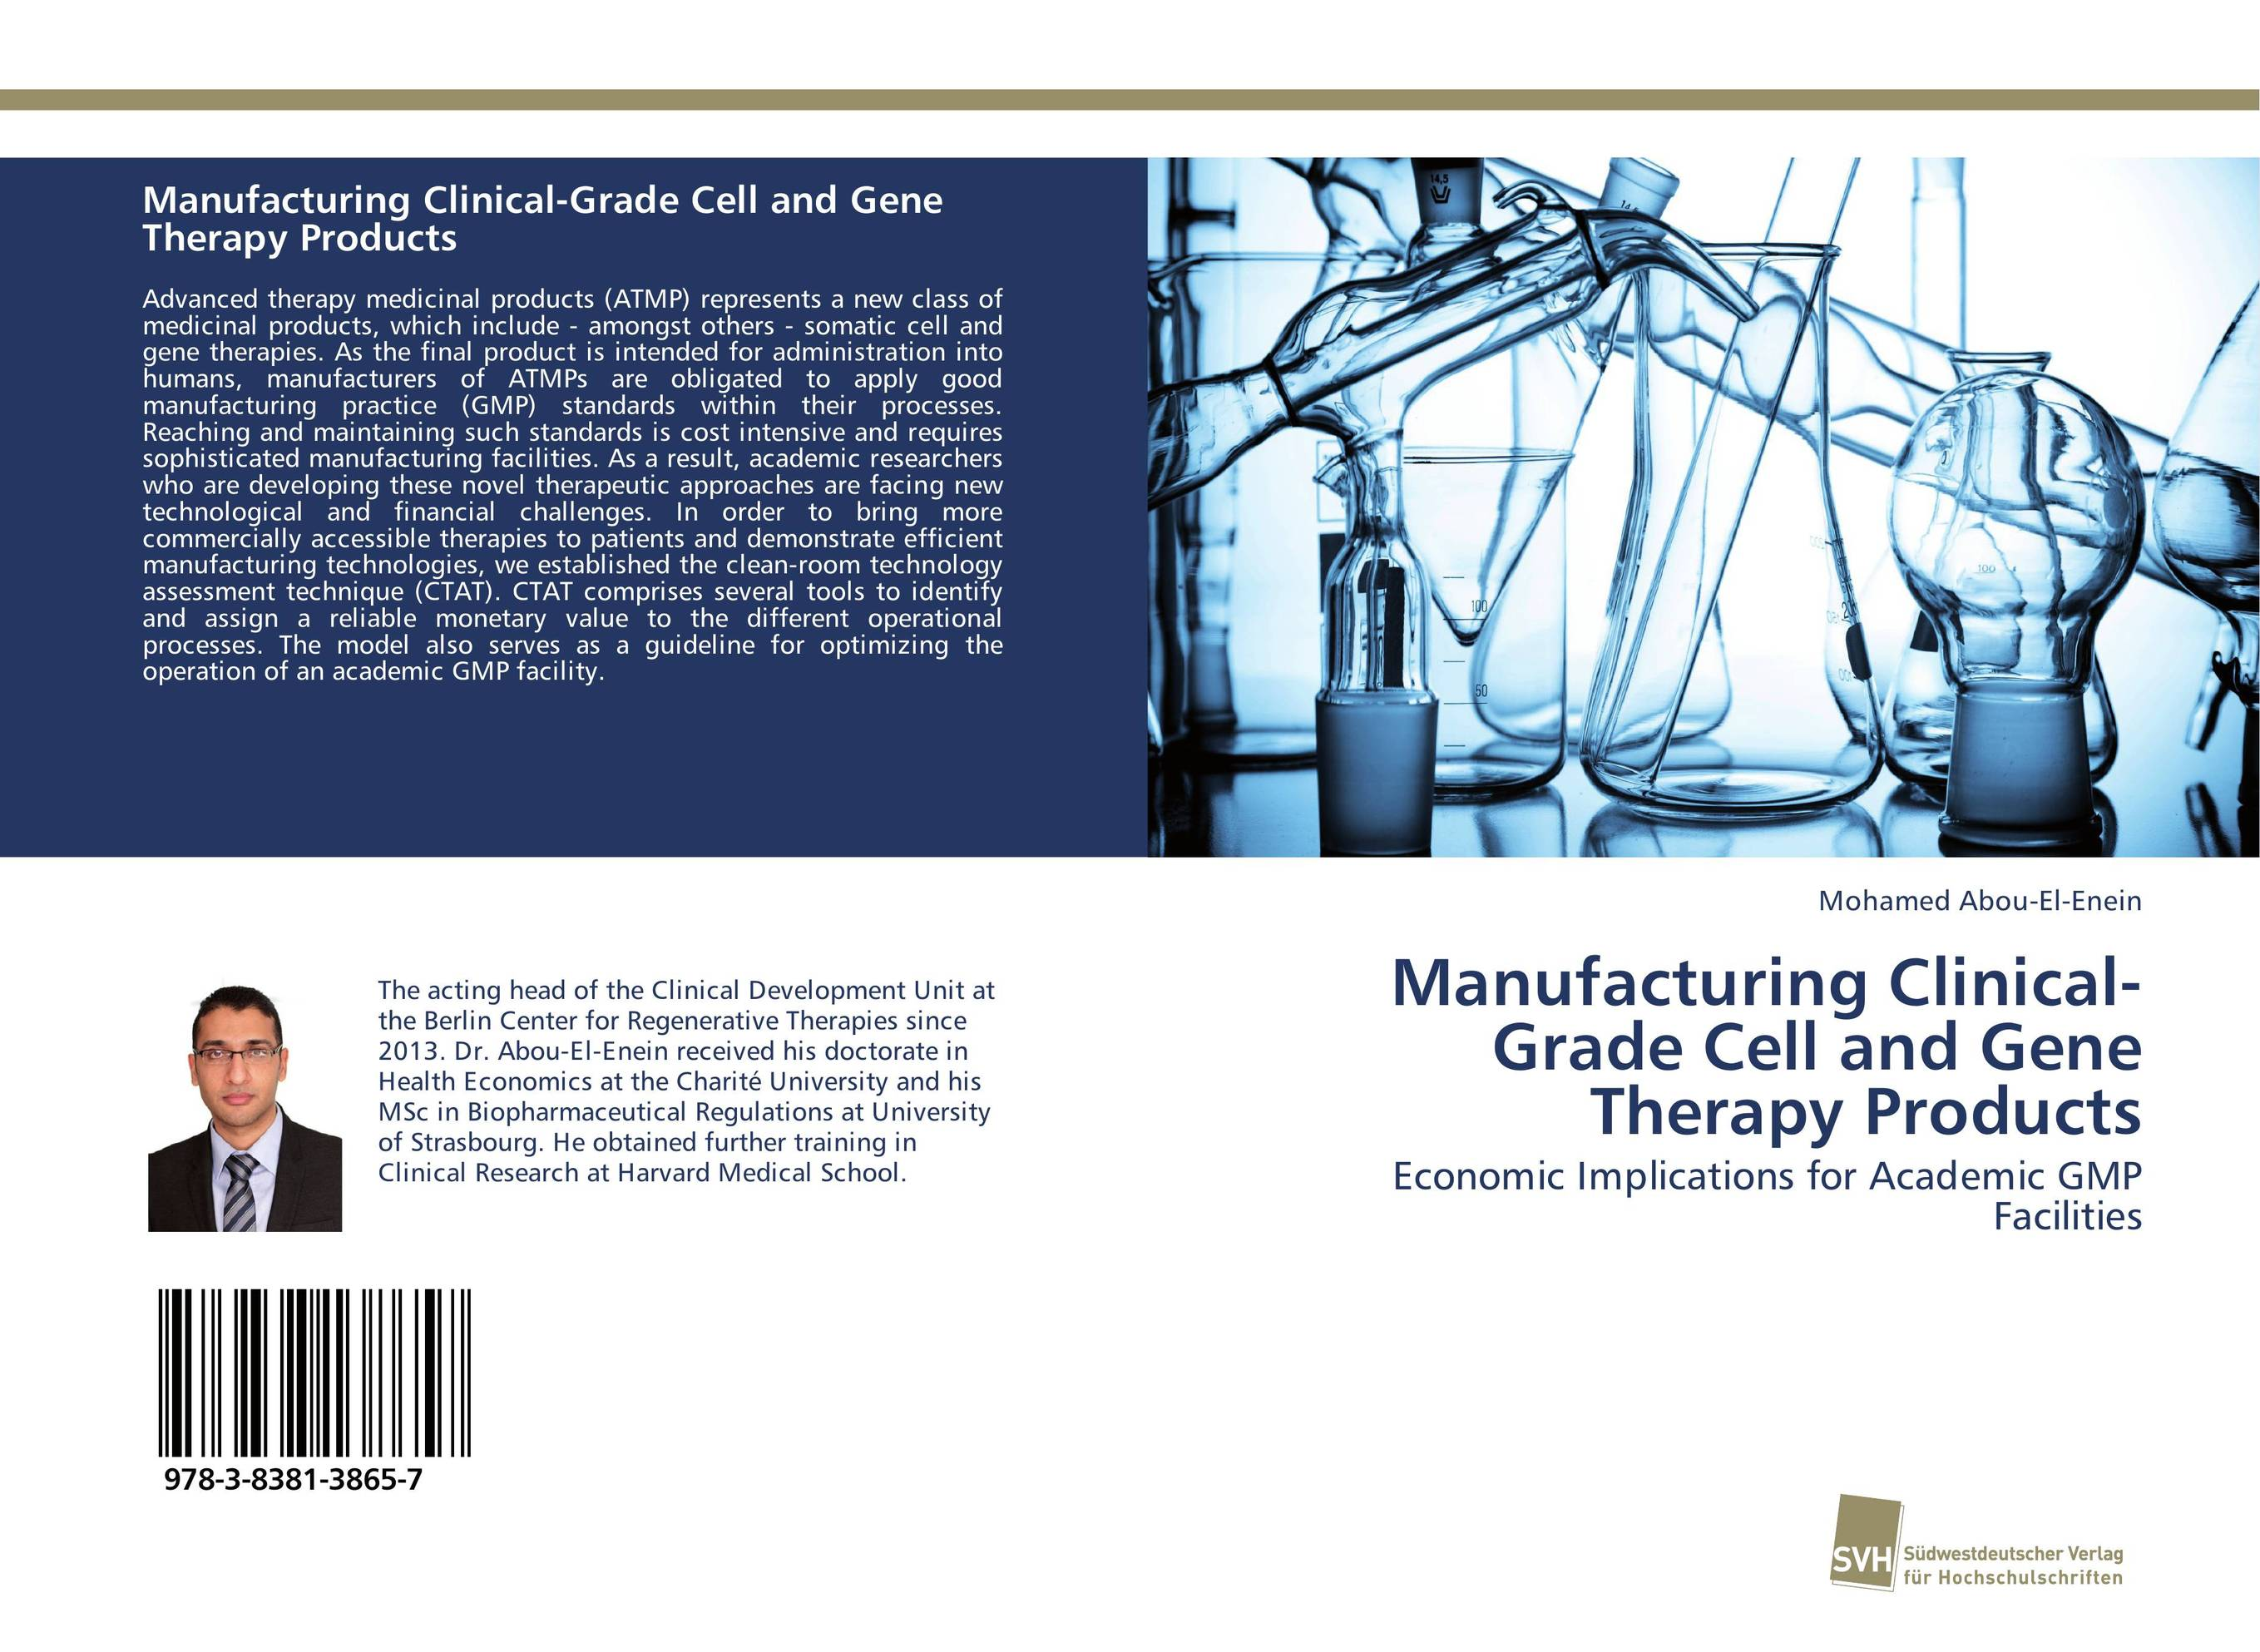 Manufacturing Clinical-Grade Cell and Gene Therapy Products